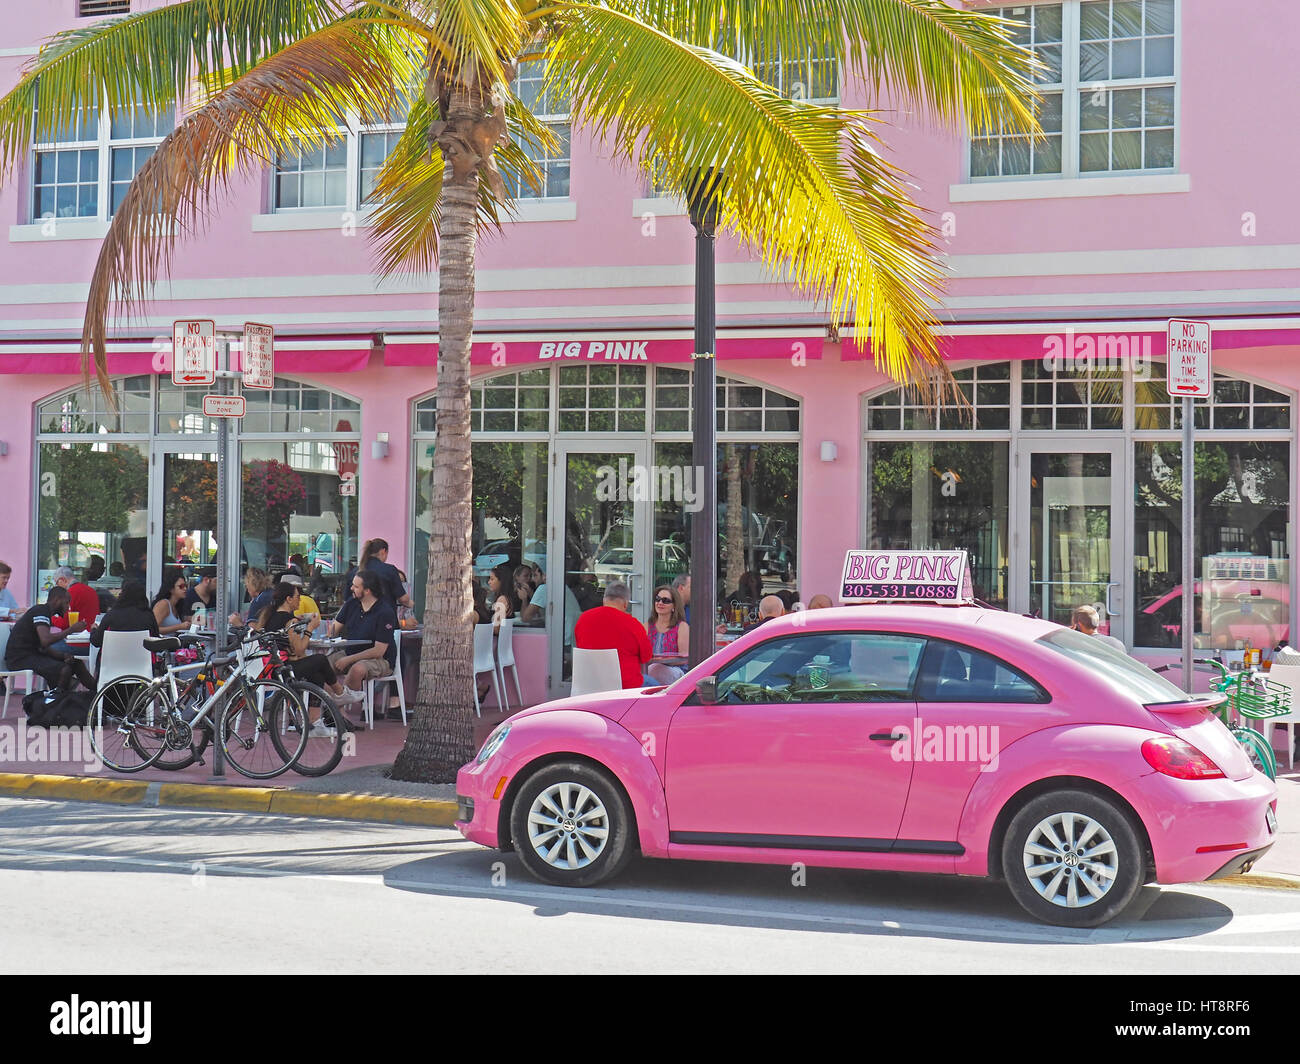 Miami's South Beach popular restaurant Big Pink. - Stock Image